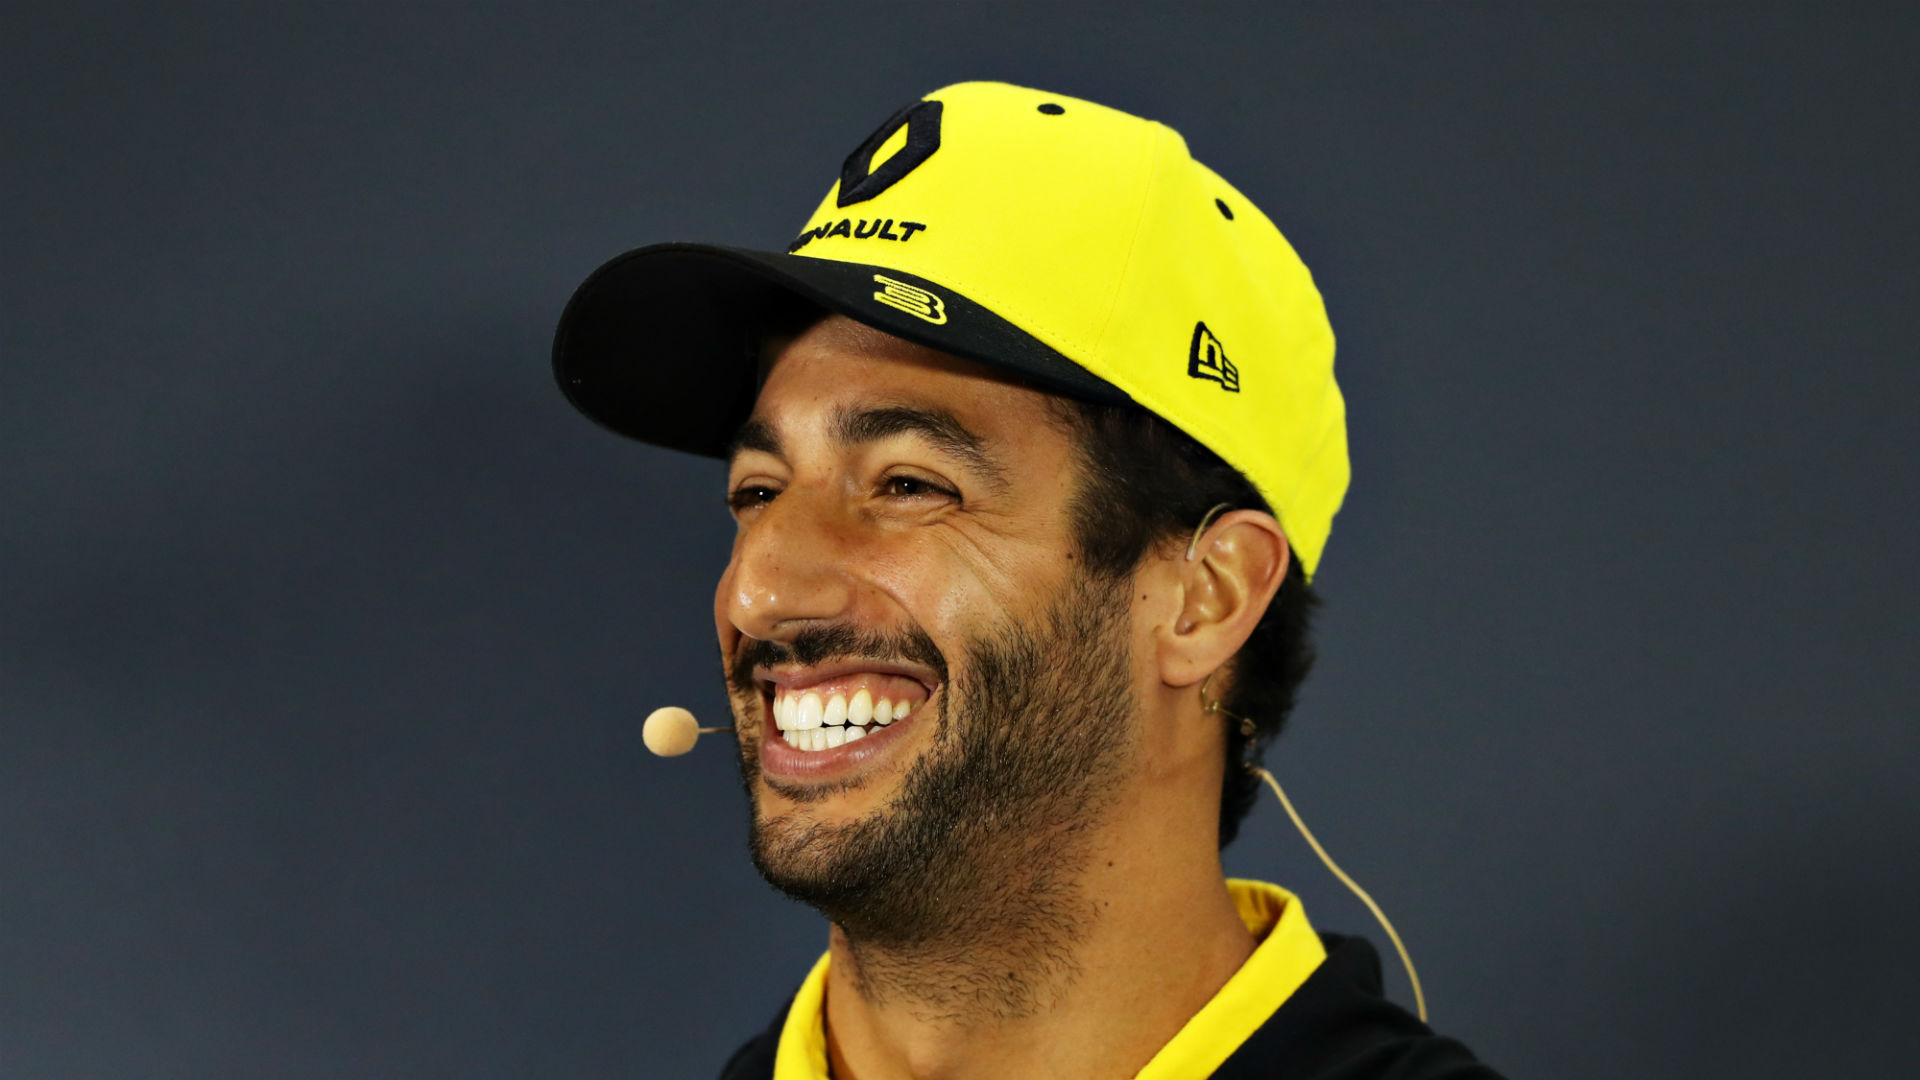 Ricciardo: Difficult debut Renault season not a year to forget